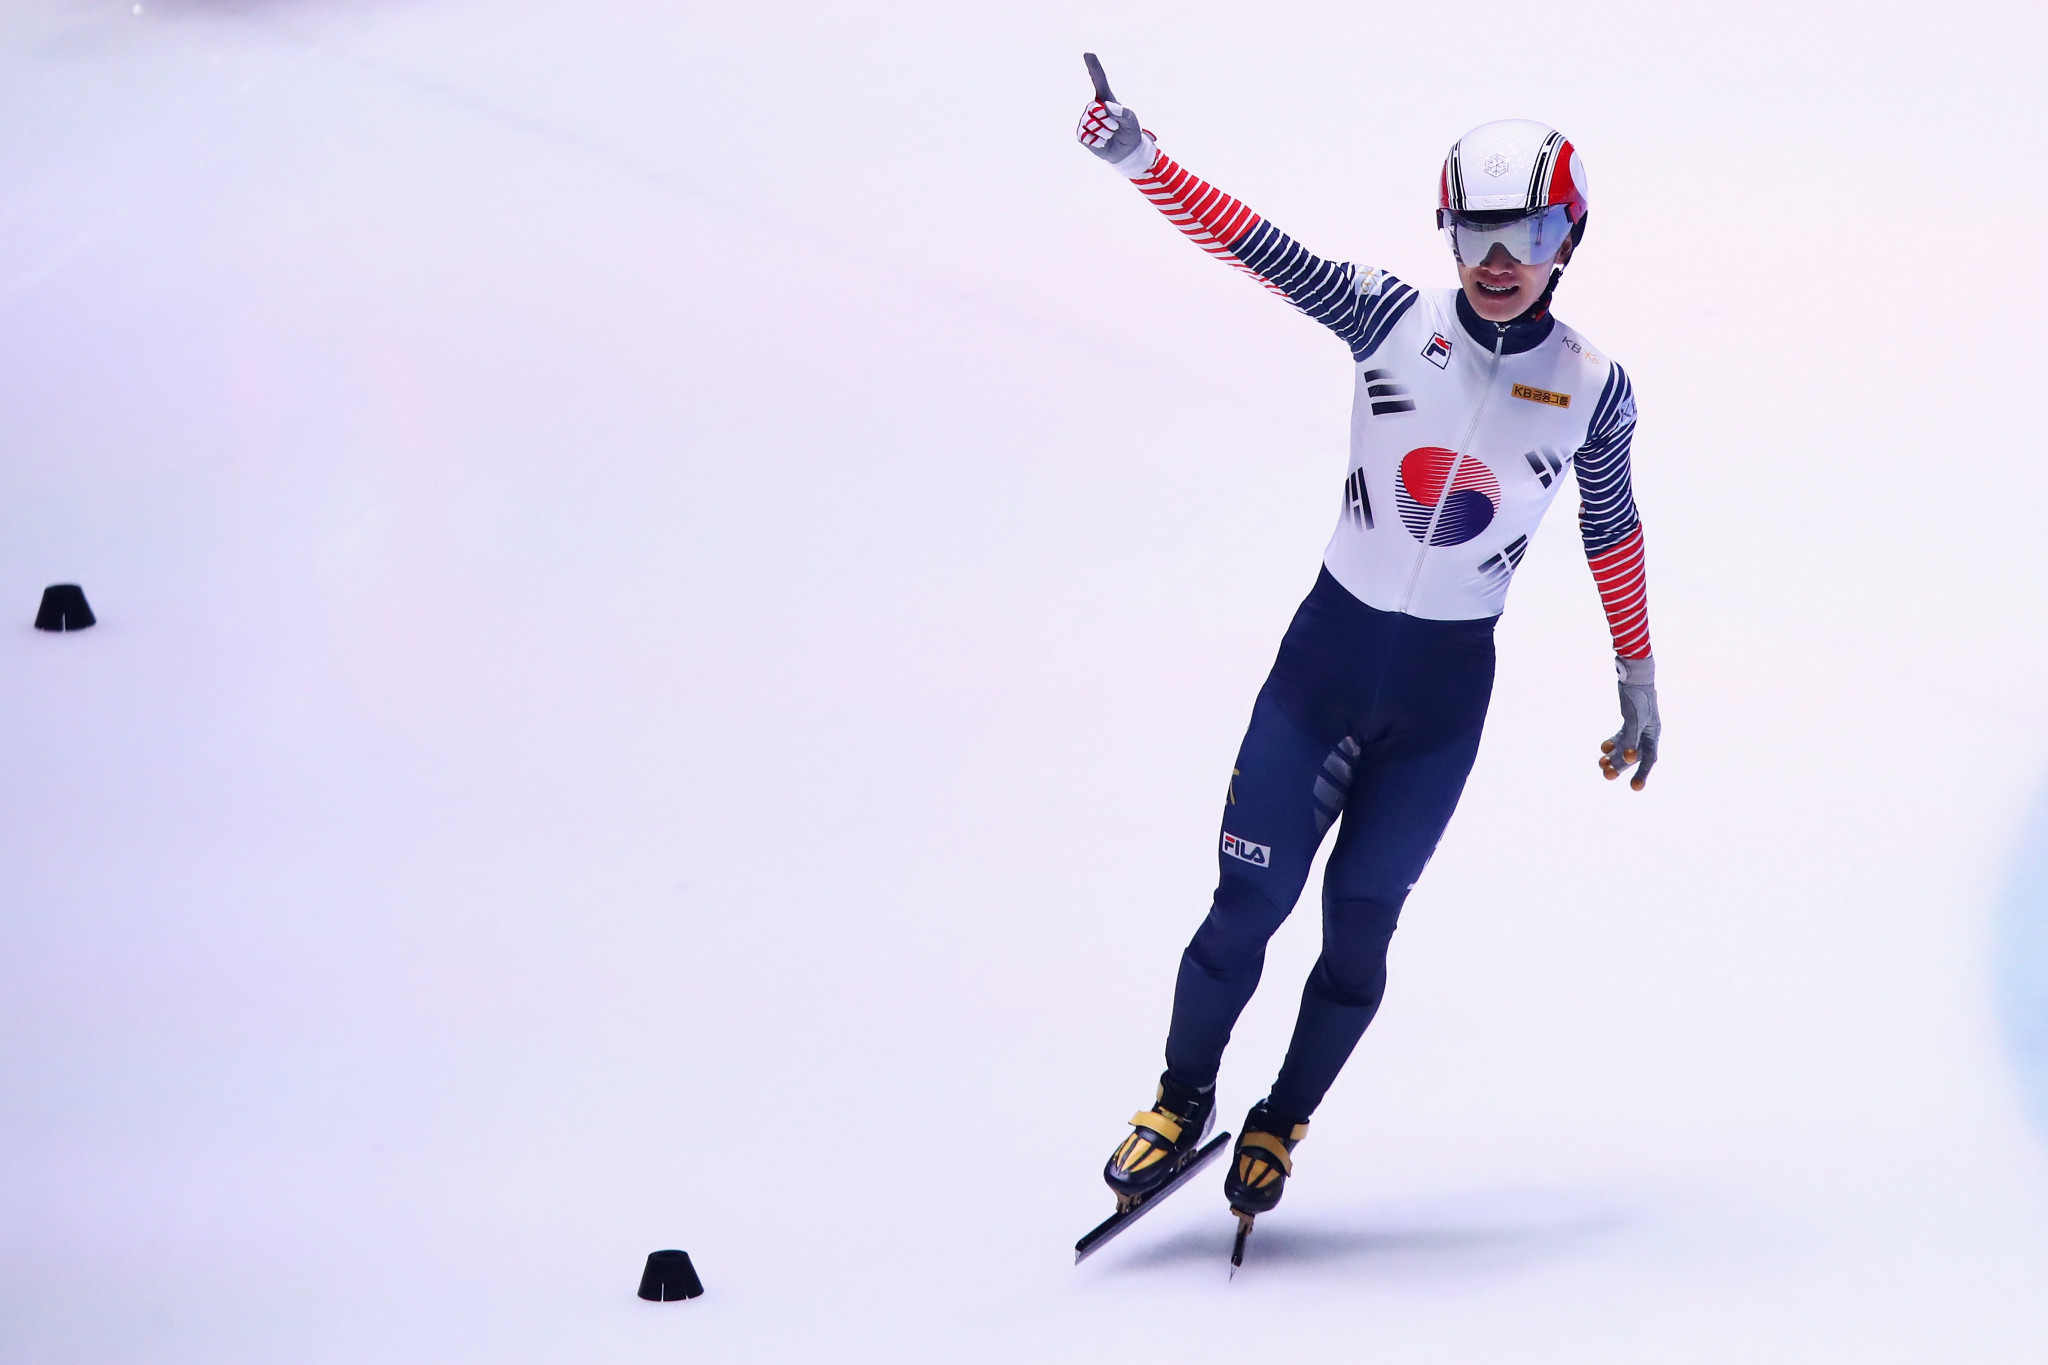 South Korea's Seo makes strong start at ISU World Cup Short Track Speed Skating event in Dordrecht